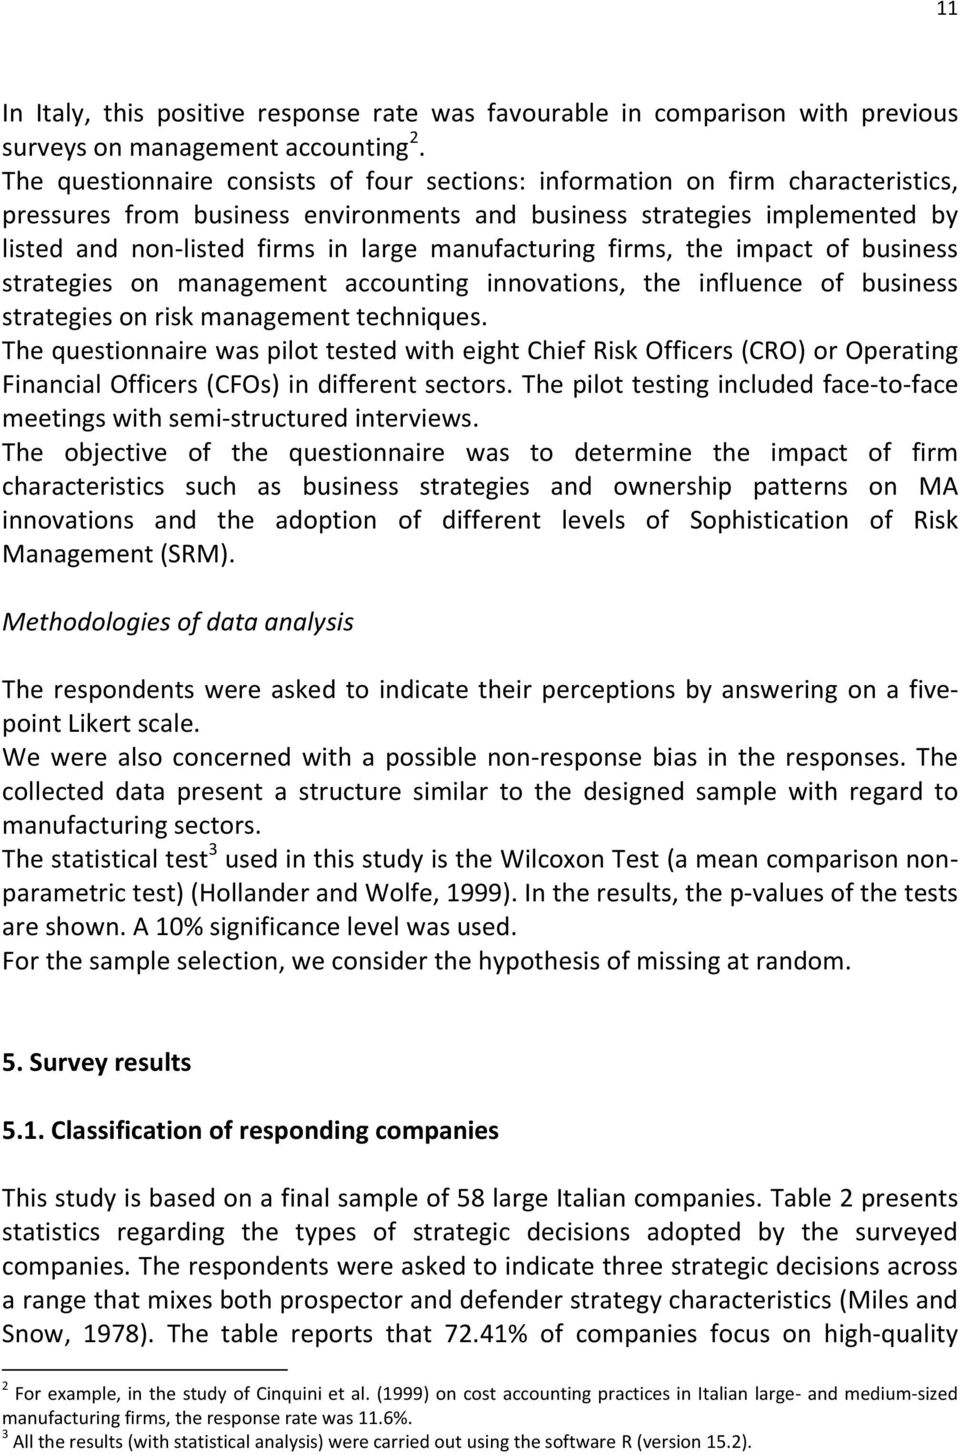 manufacturing firms, the impact of business strategies on management accounting innovations, the influence of business strategies on risk management techniques.